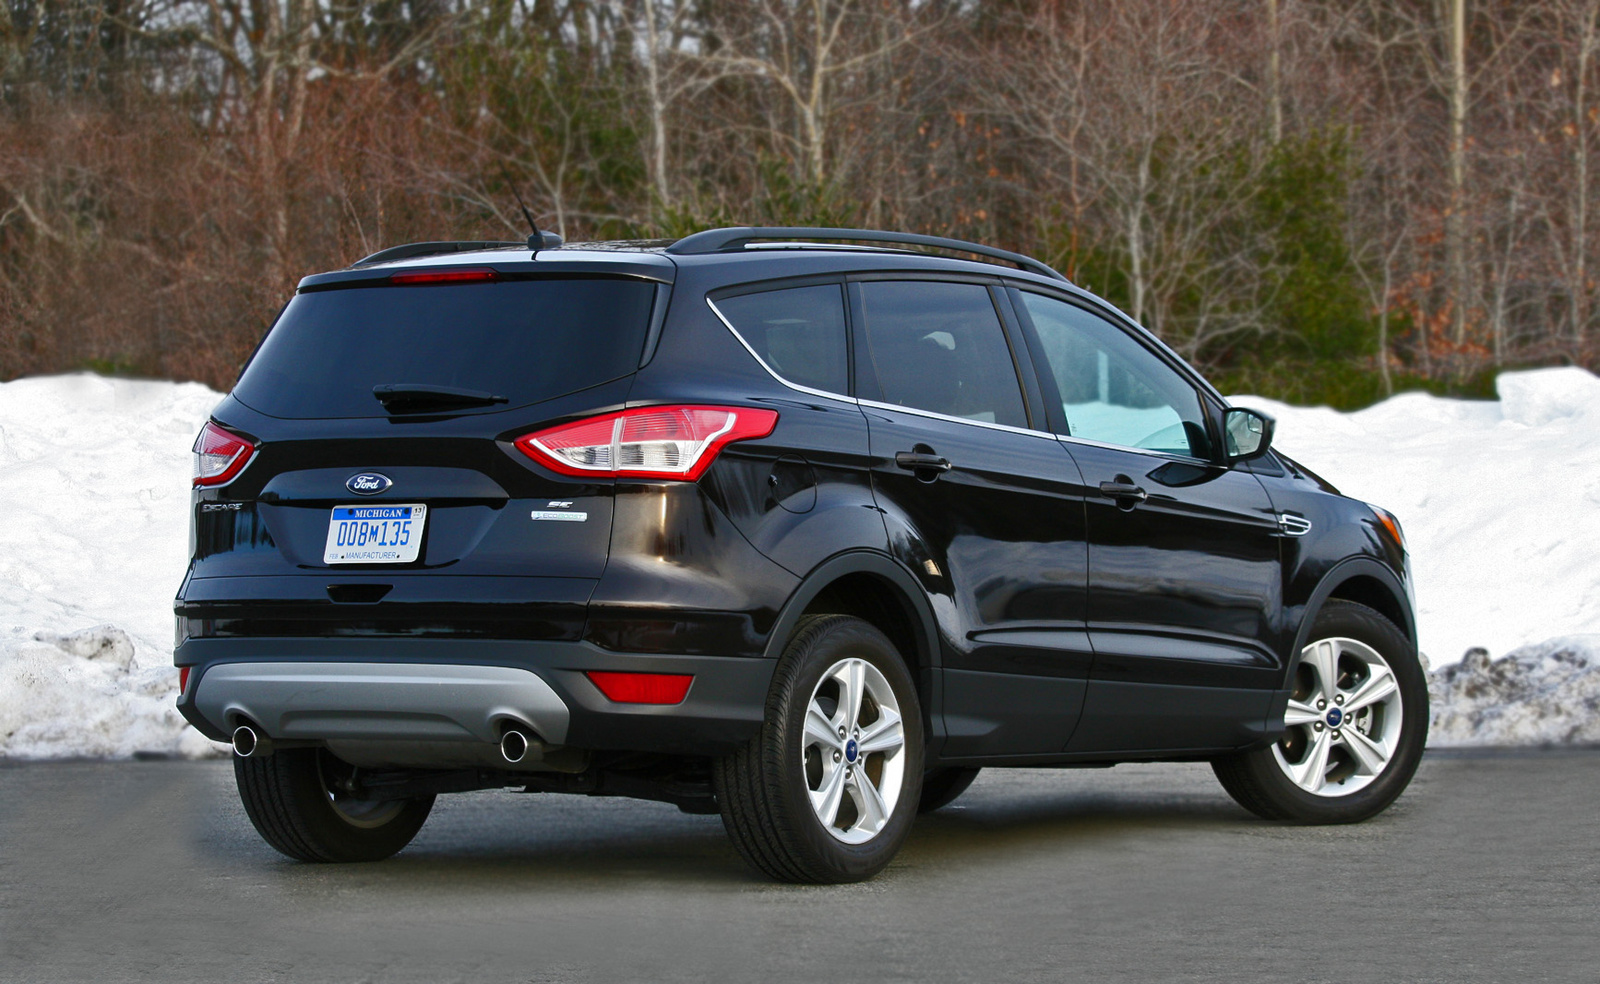 Ford Escape 4 Wheel Drive >> 2013 Ford Escape - Test Drive Review - CarGurus